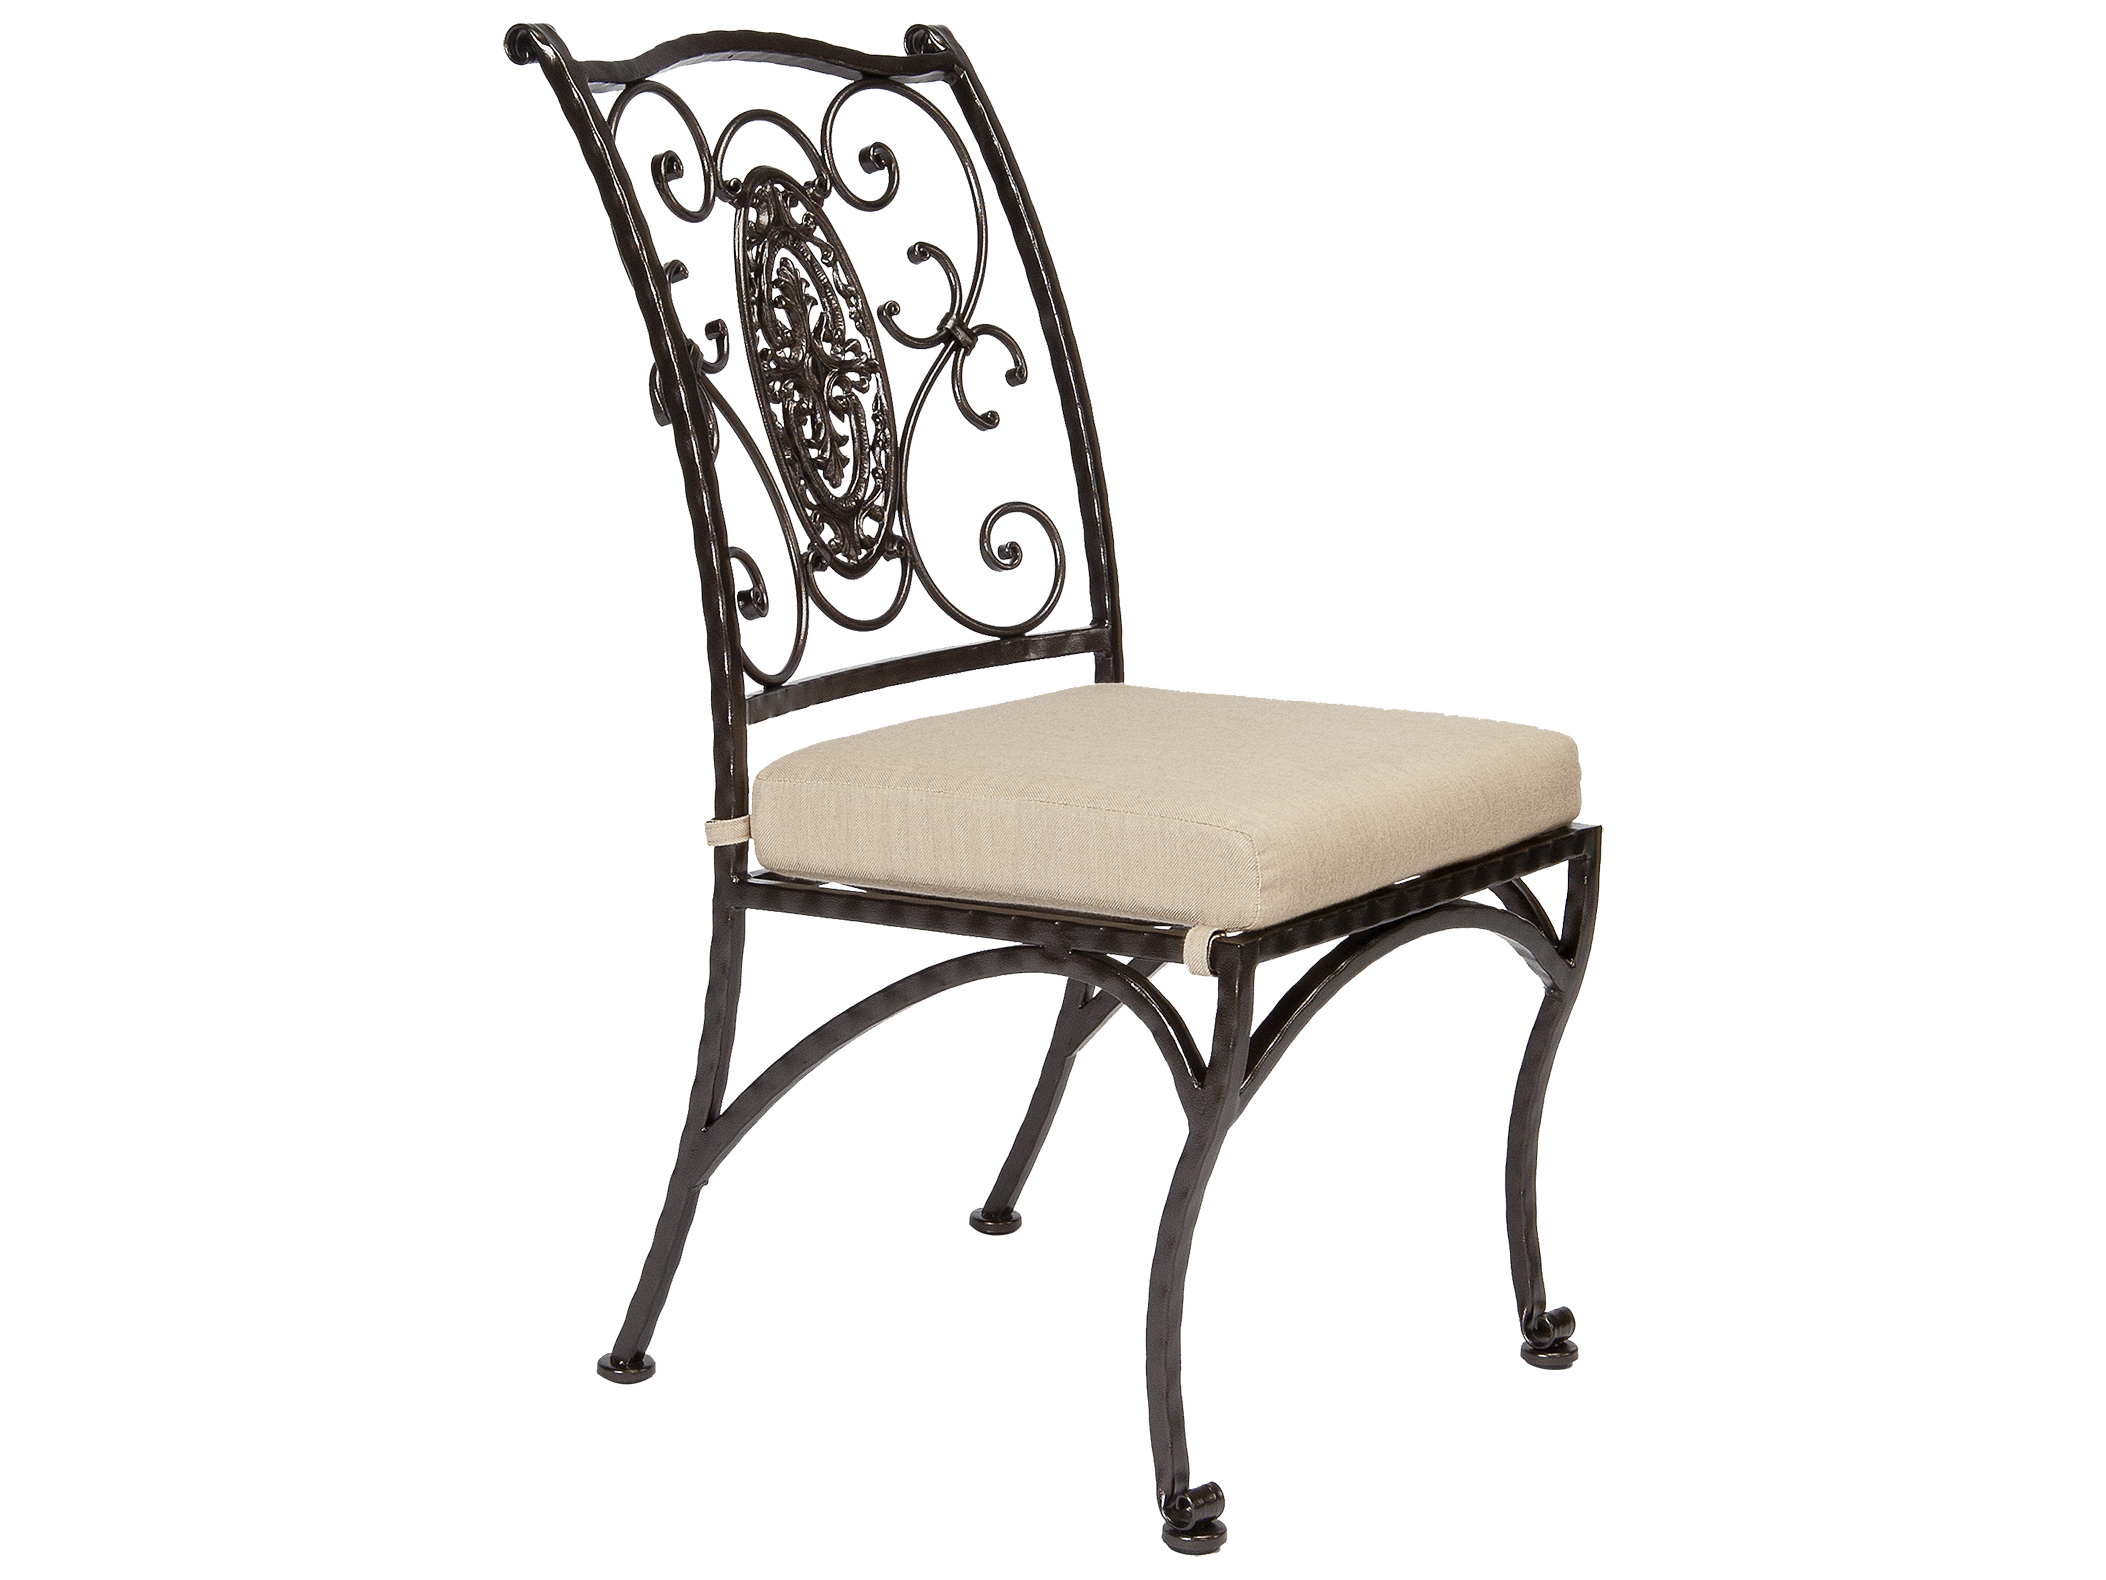 OW Lee San Cristobal Wrought Iron Dining Side Chair 651 S : OW651S2zm from www.patiocontract.com size 2103 x 1578 jpeg 149kB